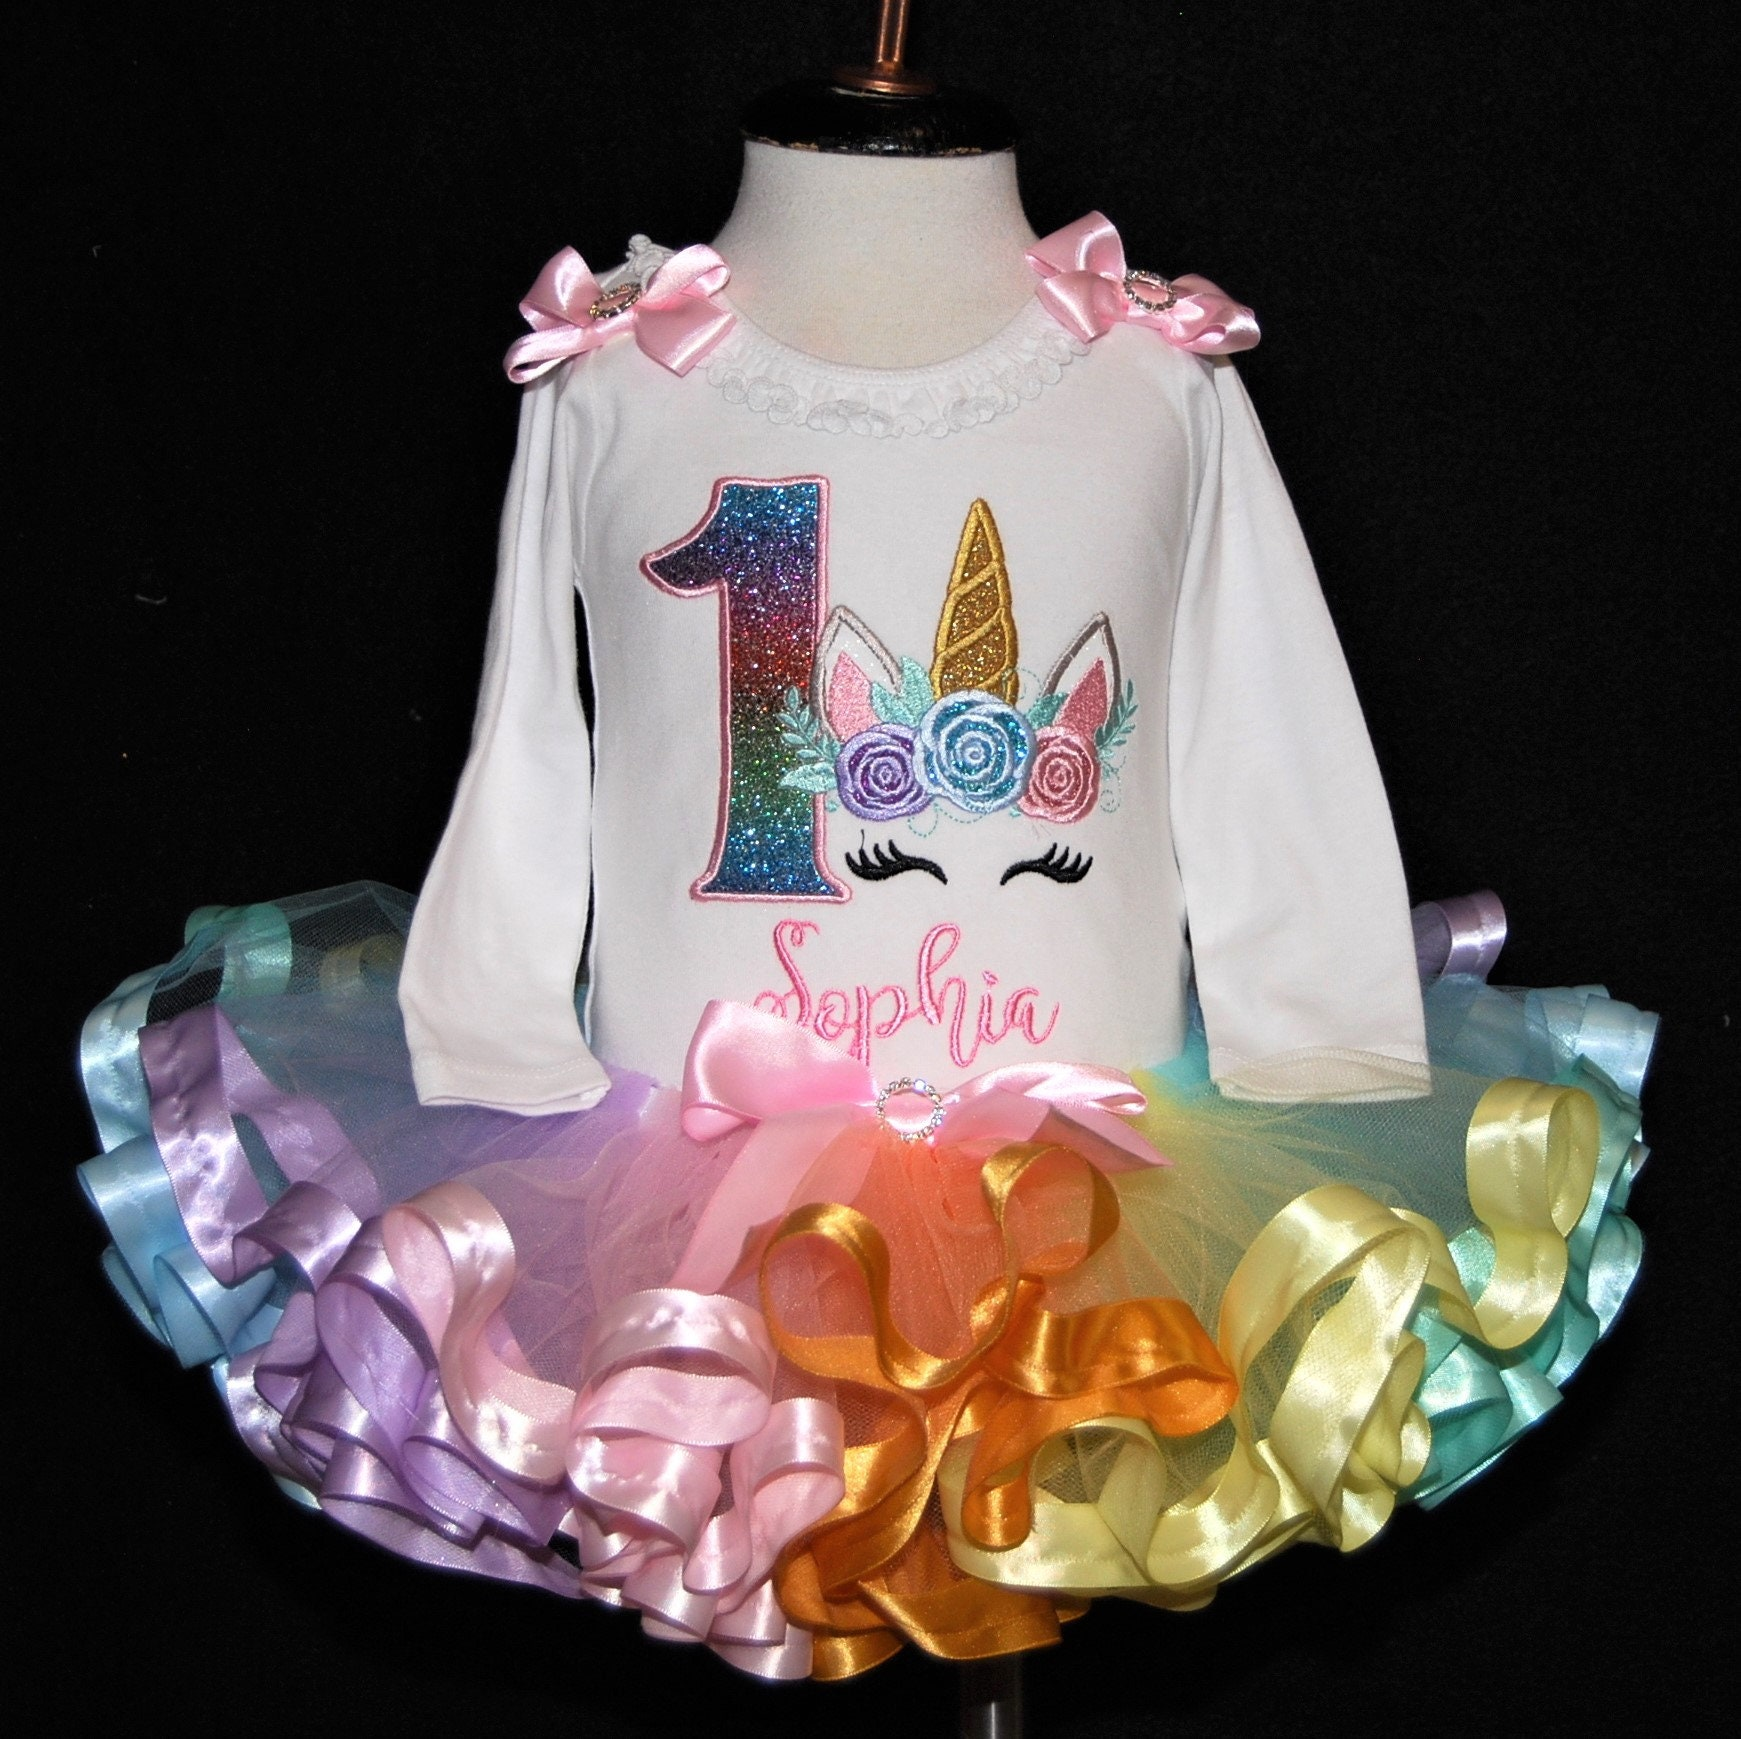 unicorn 1st birthday outfit 1st birthday girl outfit unicorn first birthday outfit pastel rainbow tutu outfit unicorn birthday outfit